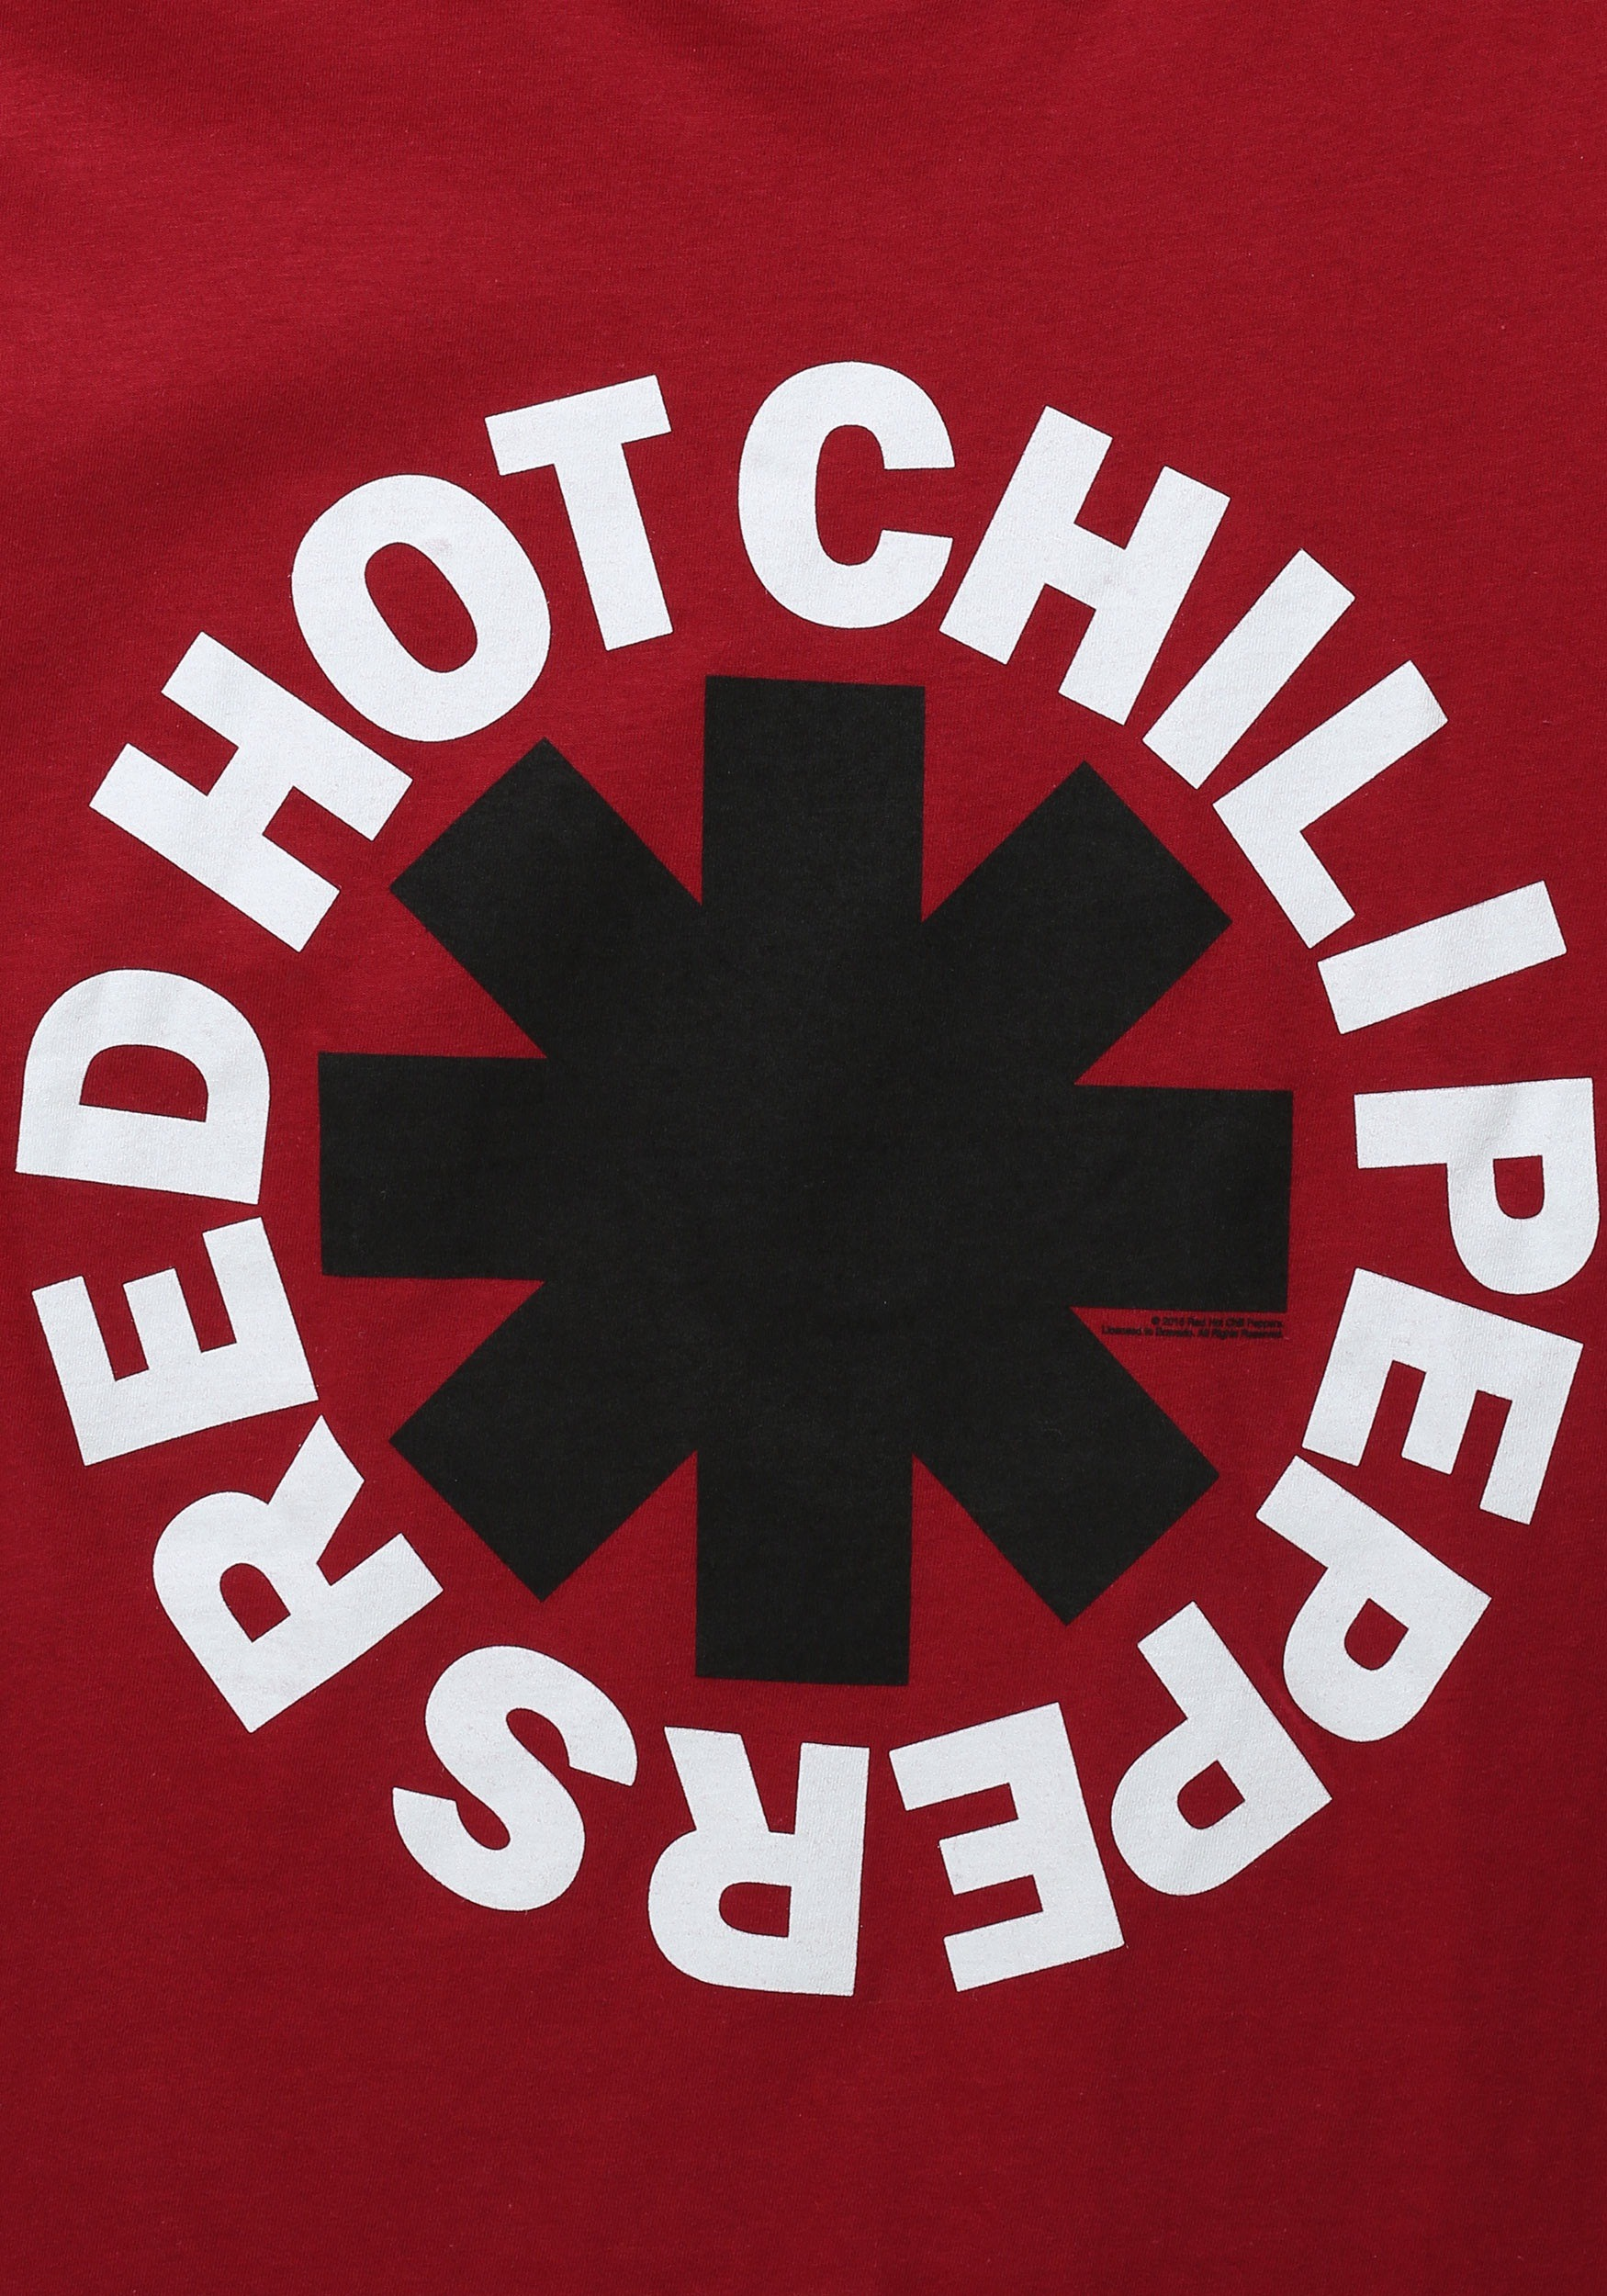 Red Hot Chili Peppers Hd Wallpapers 7wallpapers Net